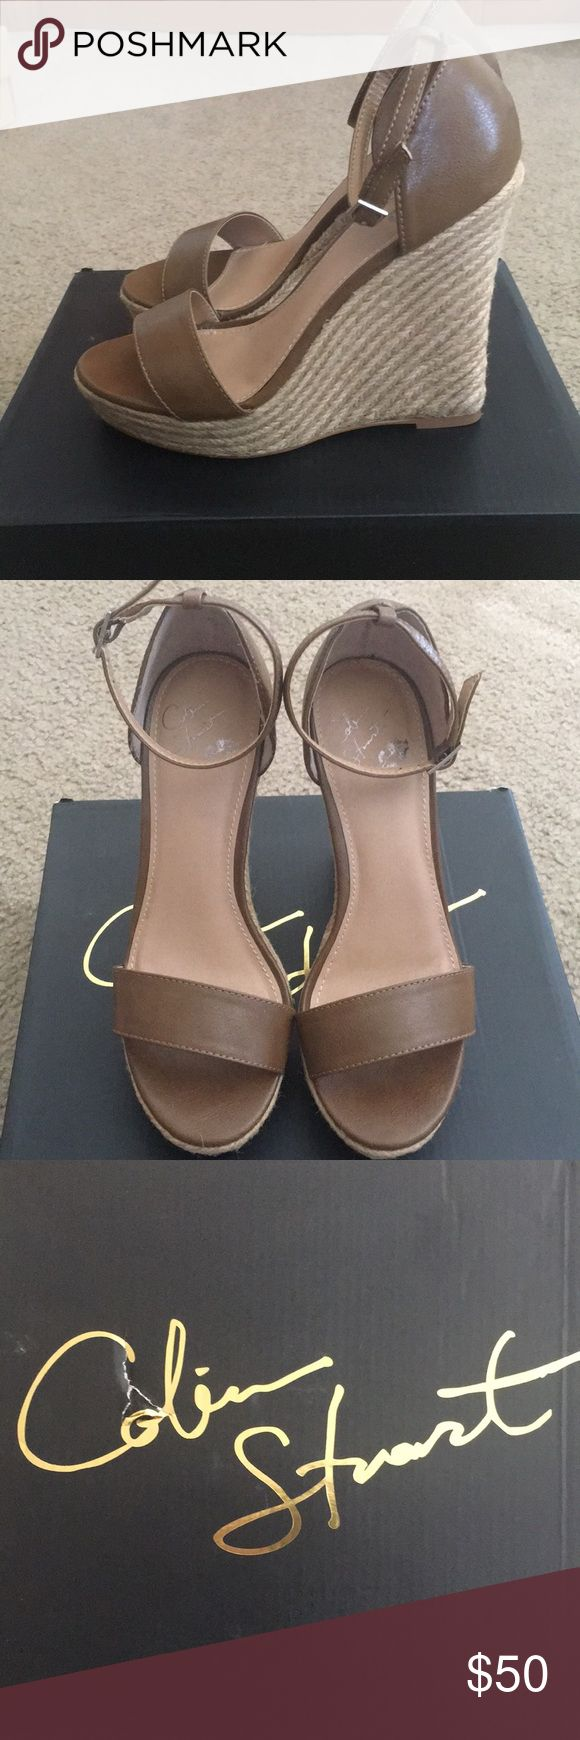 Colin Stuart Wedge Heel Colin Stuart chestnut brown wedge heel. Brand new worn around the house to see if I was going to keep them. Perfect for spring and summer right around the corner!! 🌸 Colin Stuart Shoes Wedges